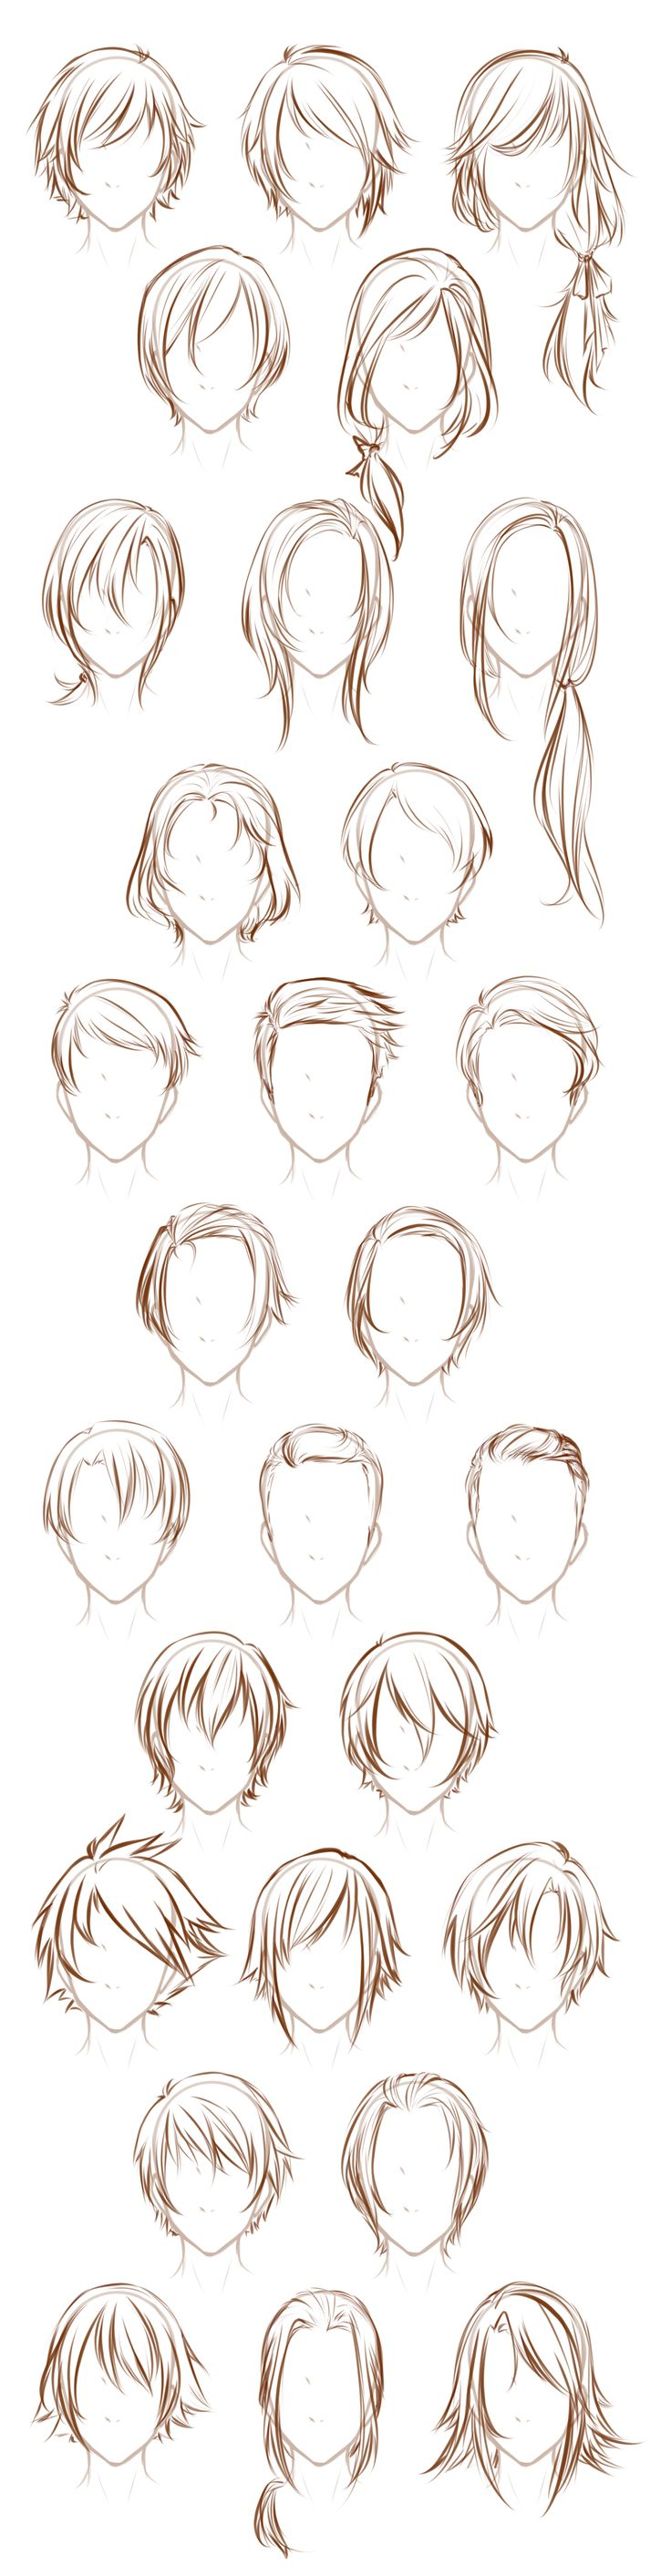 Sensational 1000 Ideas About Anime Hairstyles Male On Pinterest Hairstyles For Women Draintrainus